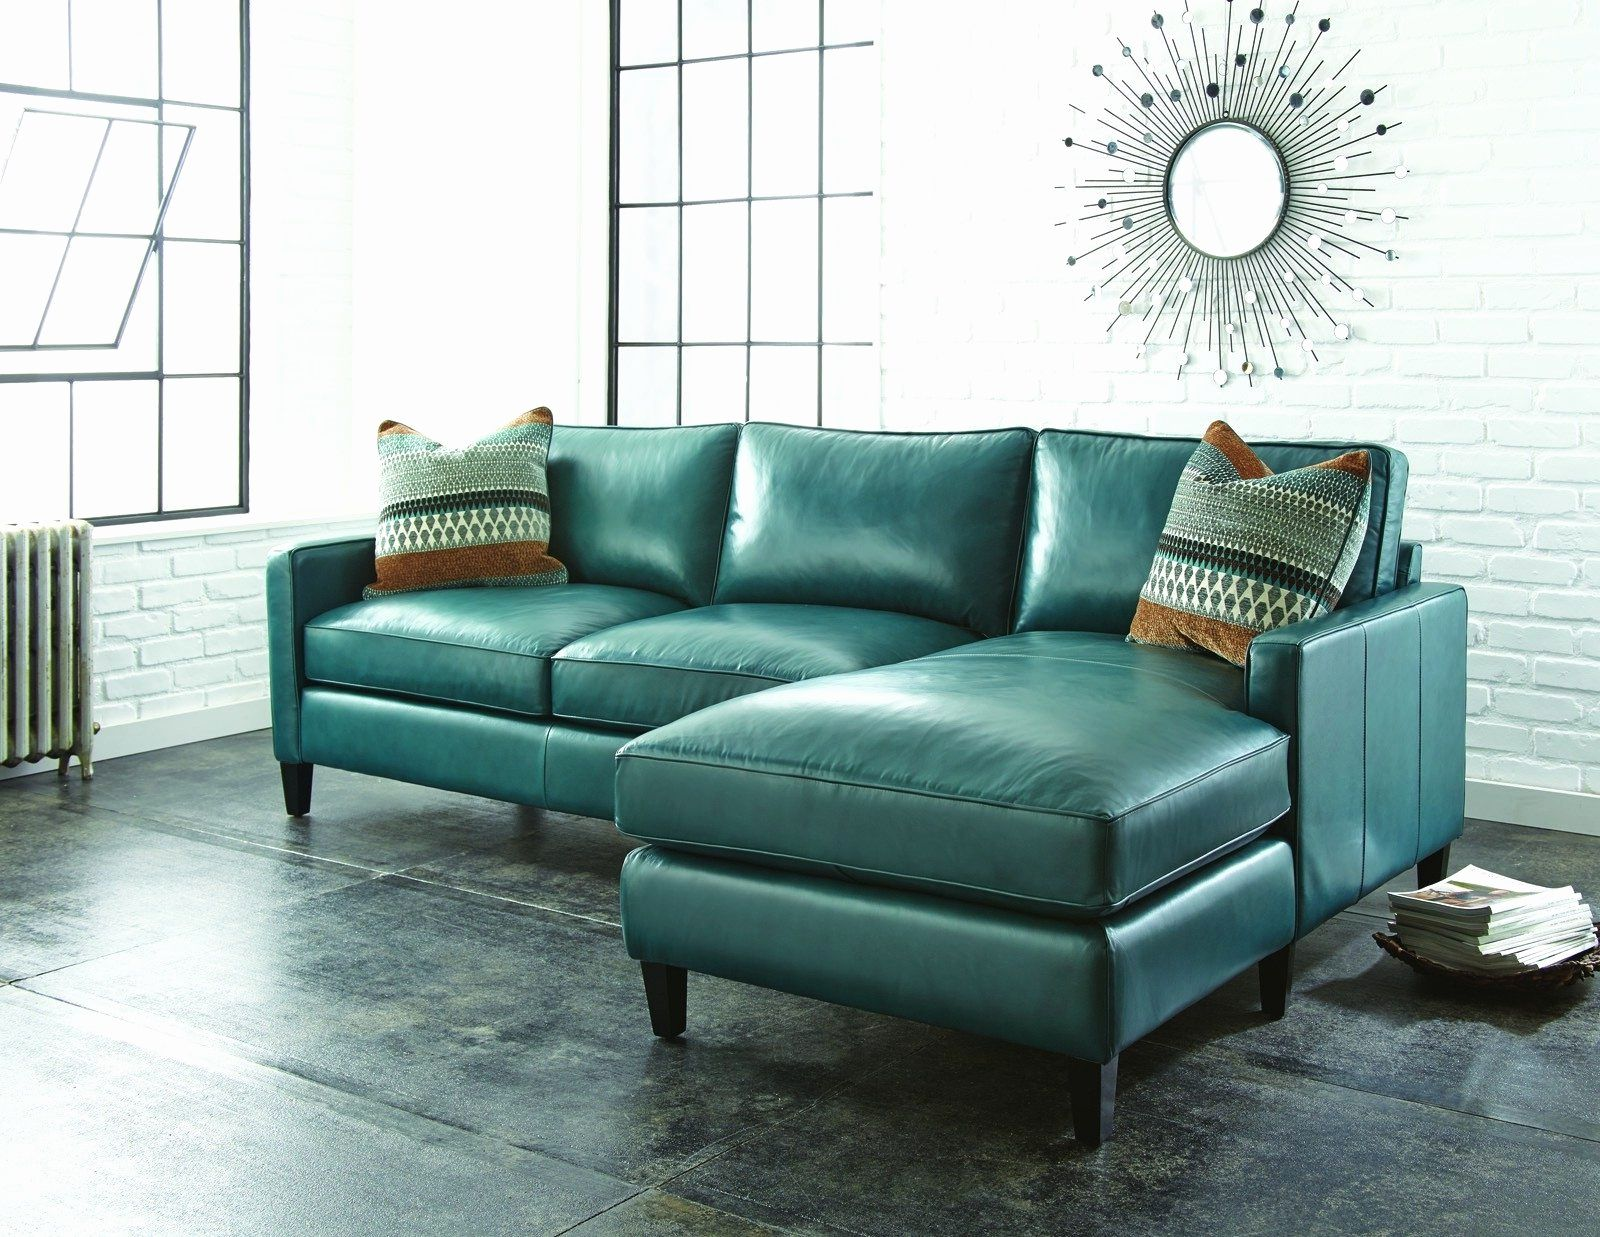 Best Of Teal Sofa Set Shot Teal Sofa Set Unique Mesmerizing Navy